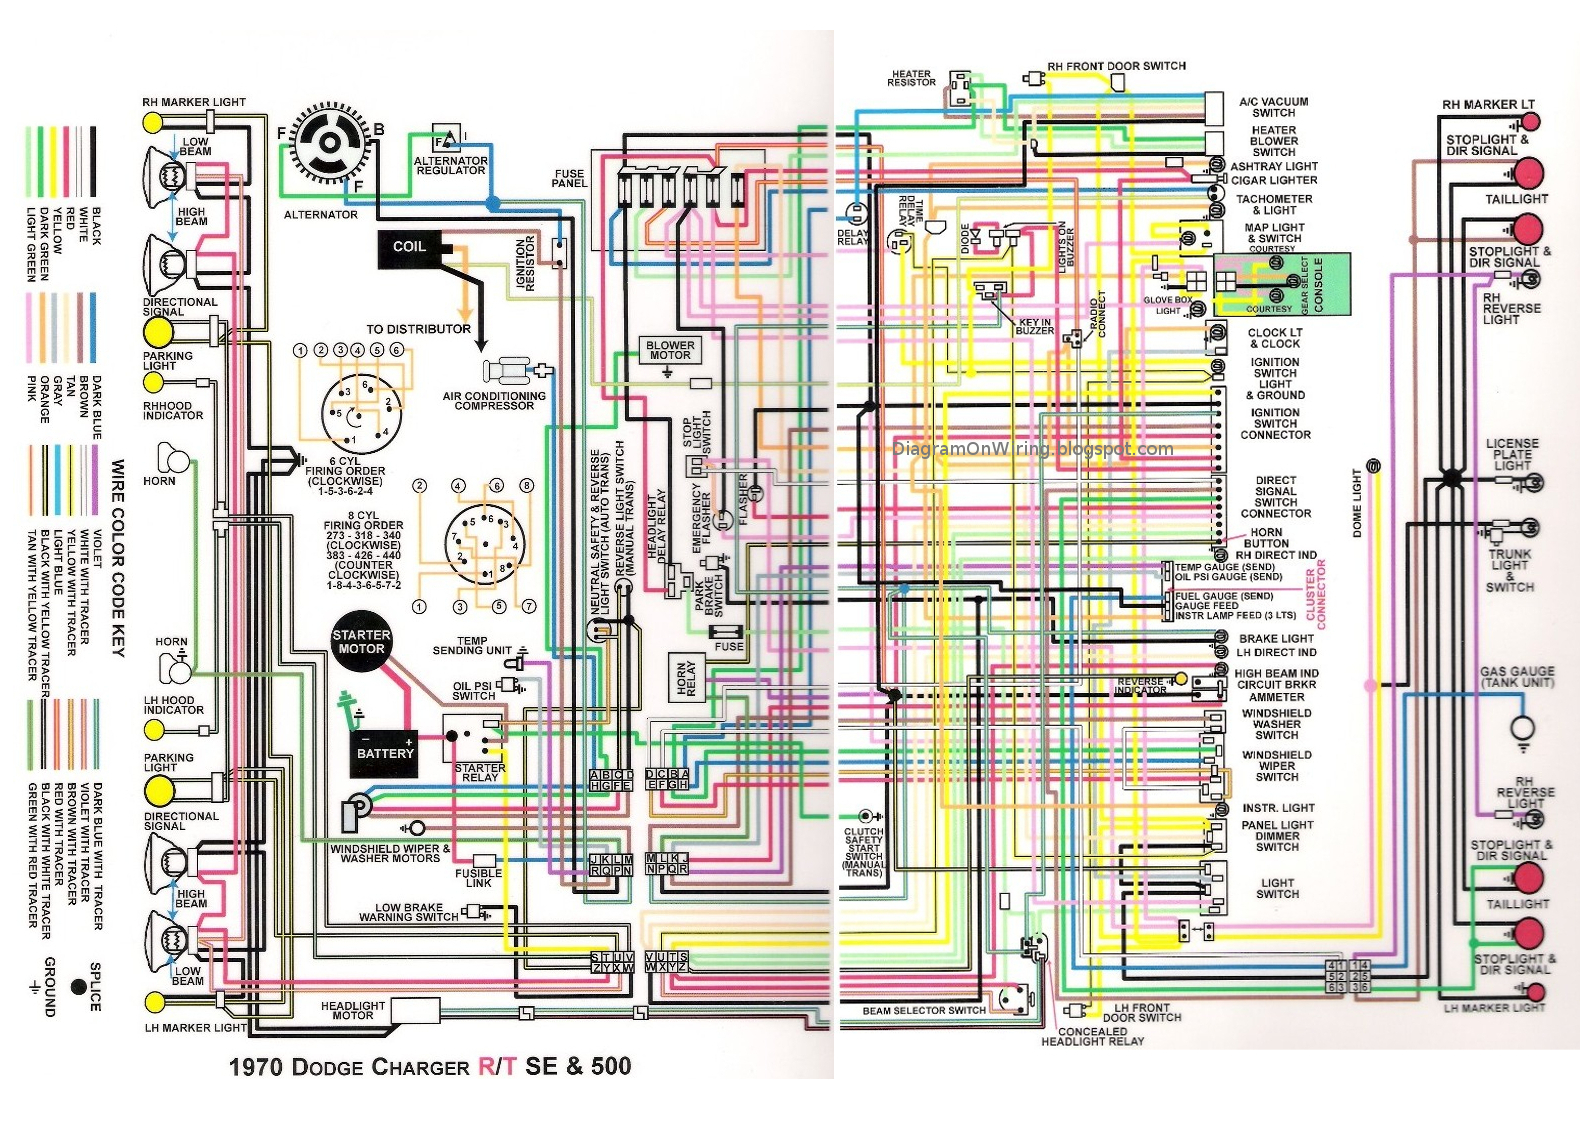 Swell Ac Alternator Wiring Diagram Basic Electronics Wiring Diagram Wiring Cloud Licukshollocom